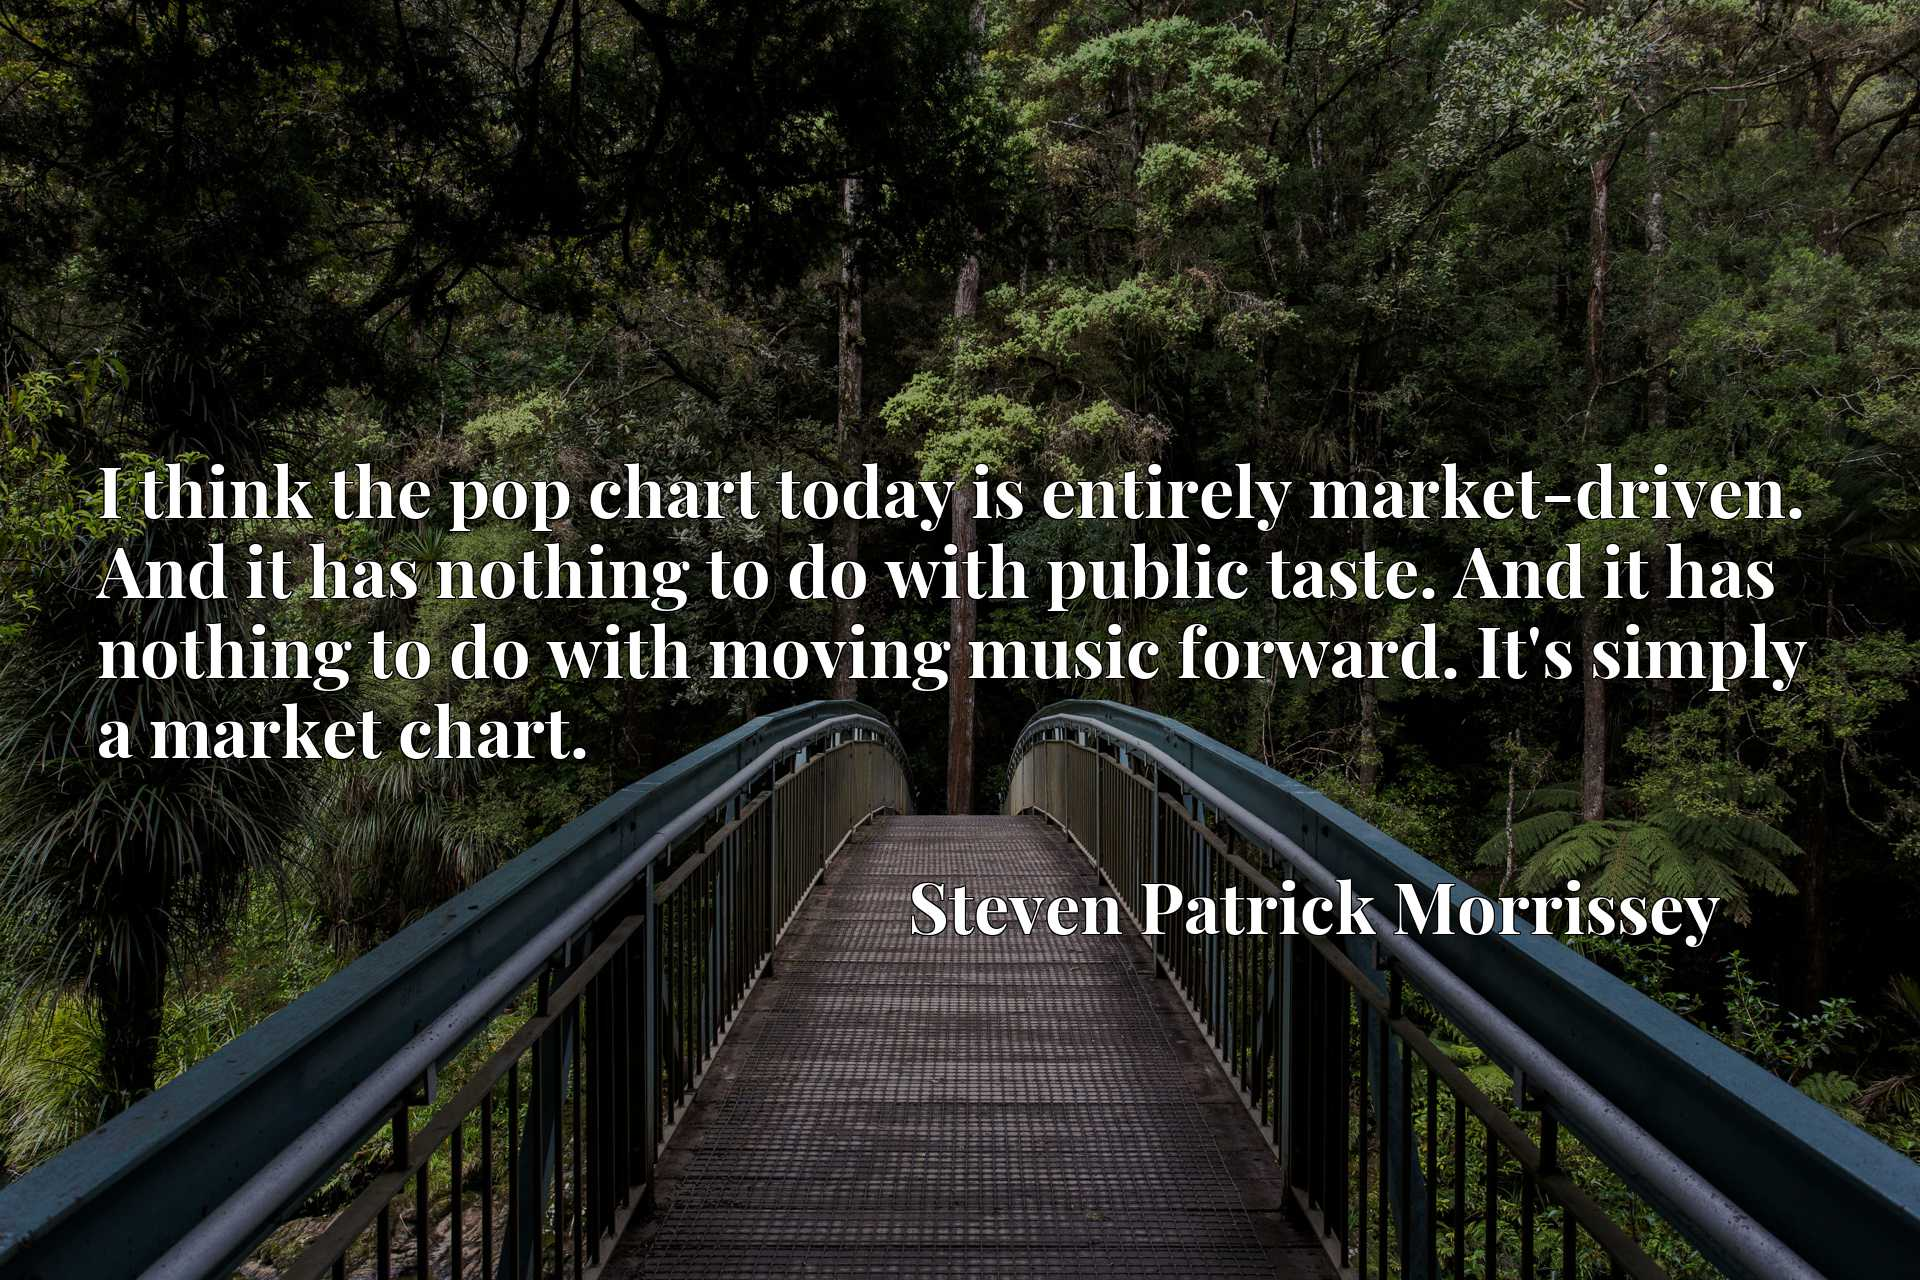 I think the pop chart today is entirely market-driven. And it has nothing to do with public taste. And it has nothing to do with moving music forward. It's simply a market chart.